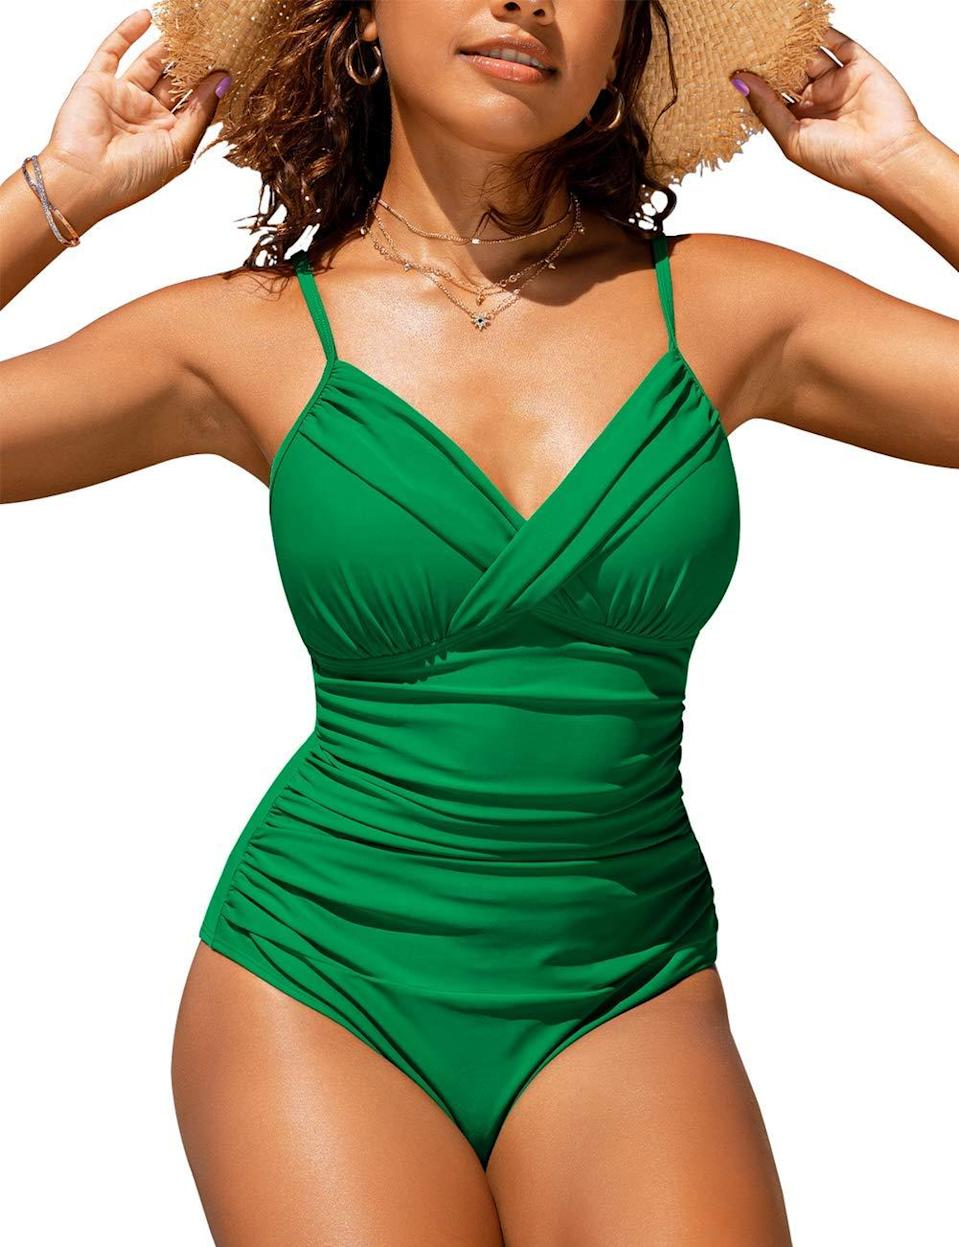 """<strong><em>Hilor Front Twist One-Piece</em></strong><br><br>Amazon user Dancerlady had this to say about this flattering and swimsuit: """"I really like this one piece swimsuit. After receiving it, I ordered another color. I have not been able to wear a swimsuit without a skirt in years because of my belly. The little padding in the bra part and the ruching in the stomach give my body a pleasing look. Even when I weighed 17 pounds less, I looked like a gymnast with a pot belly so this type of swimsuit makes me look more proportioned.""""<br><br><br><strong>Hilor</strong> Front Twist One-Piece, $, available at <a href=""""https://amzn.to/2RZxYtb"""" rel=""""nofollow noopener"""" target=""""_blank"""" data-ylk=""""slk:Amazon"""" class=""""link rapid-noclick-resp"""">Amazon</a>"""